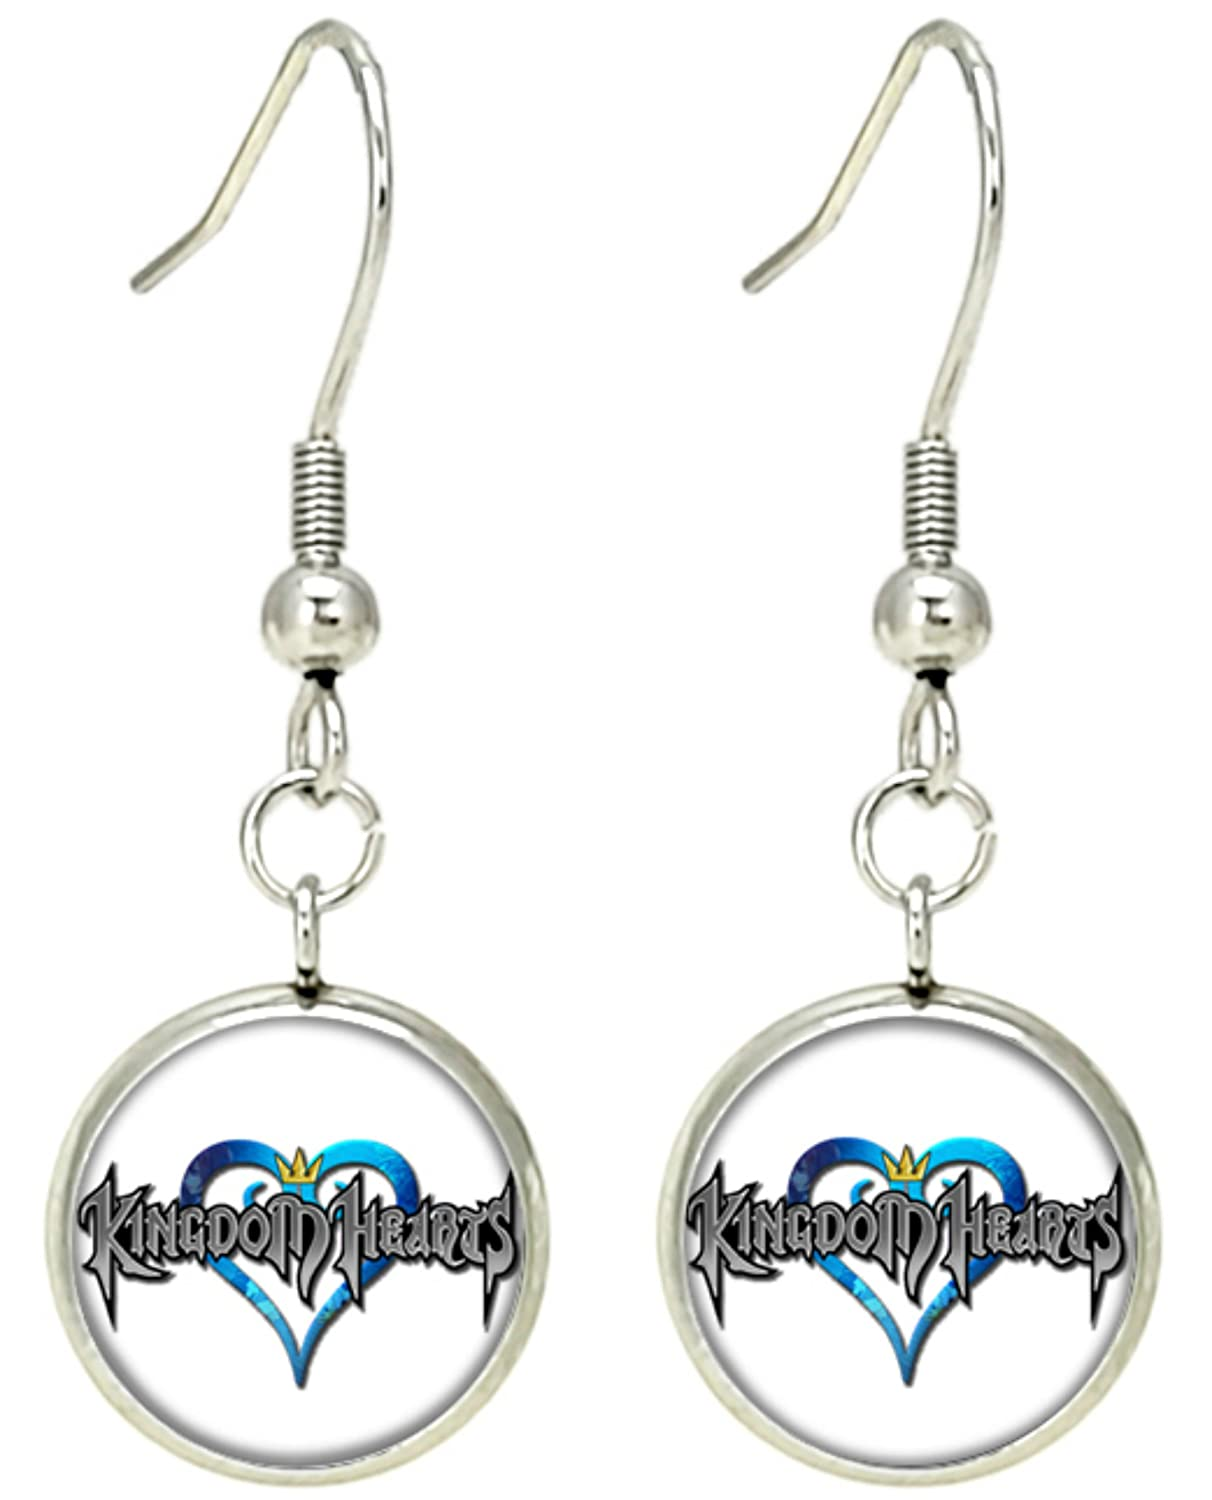 Amazon.com: Kingdom Hearts arete colgantes personaje ...